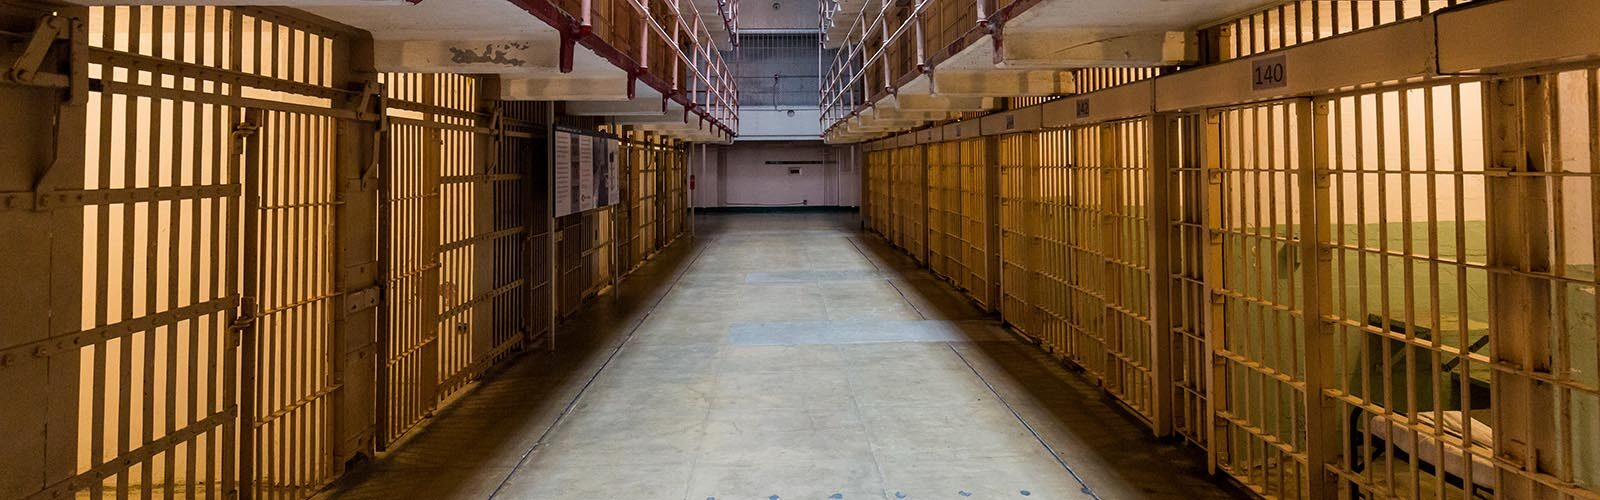 The pandemic in prisons